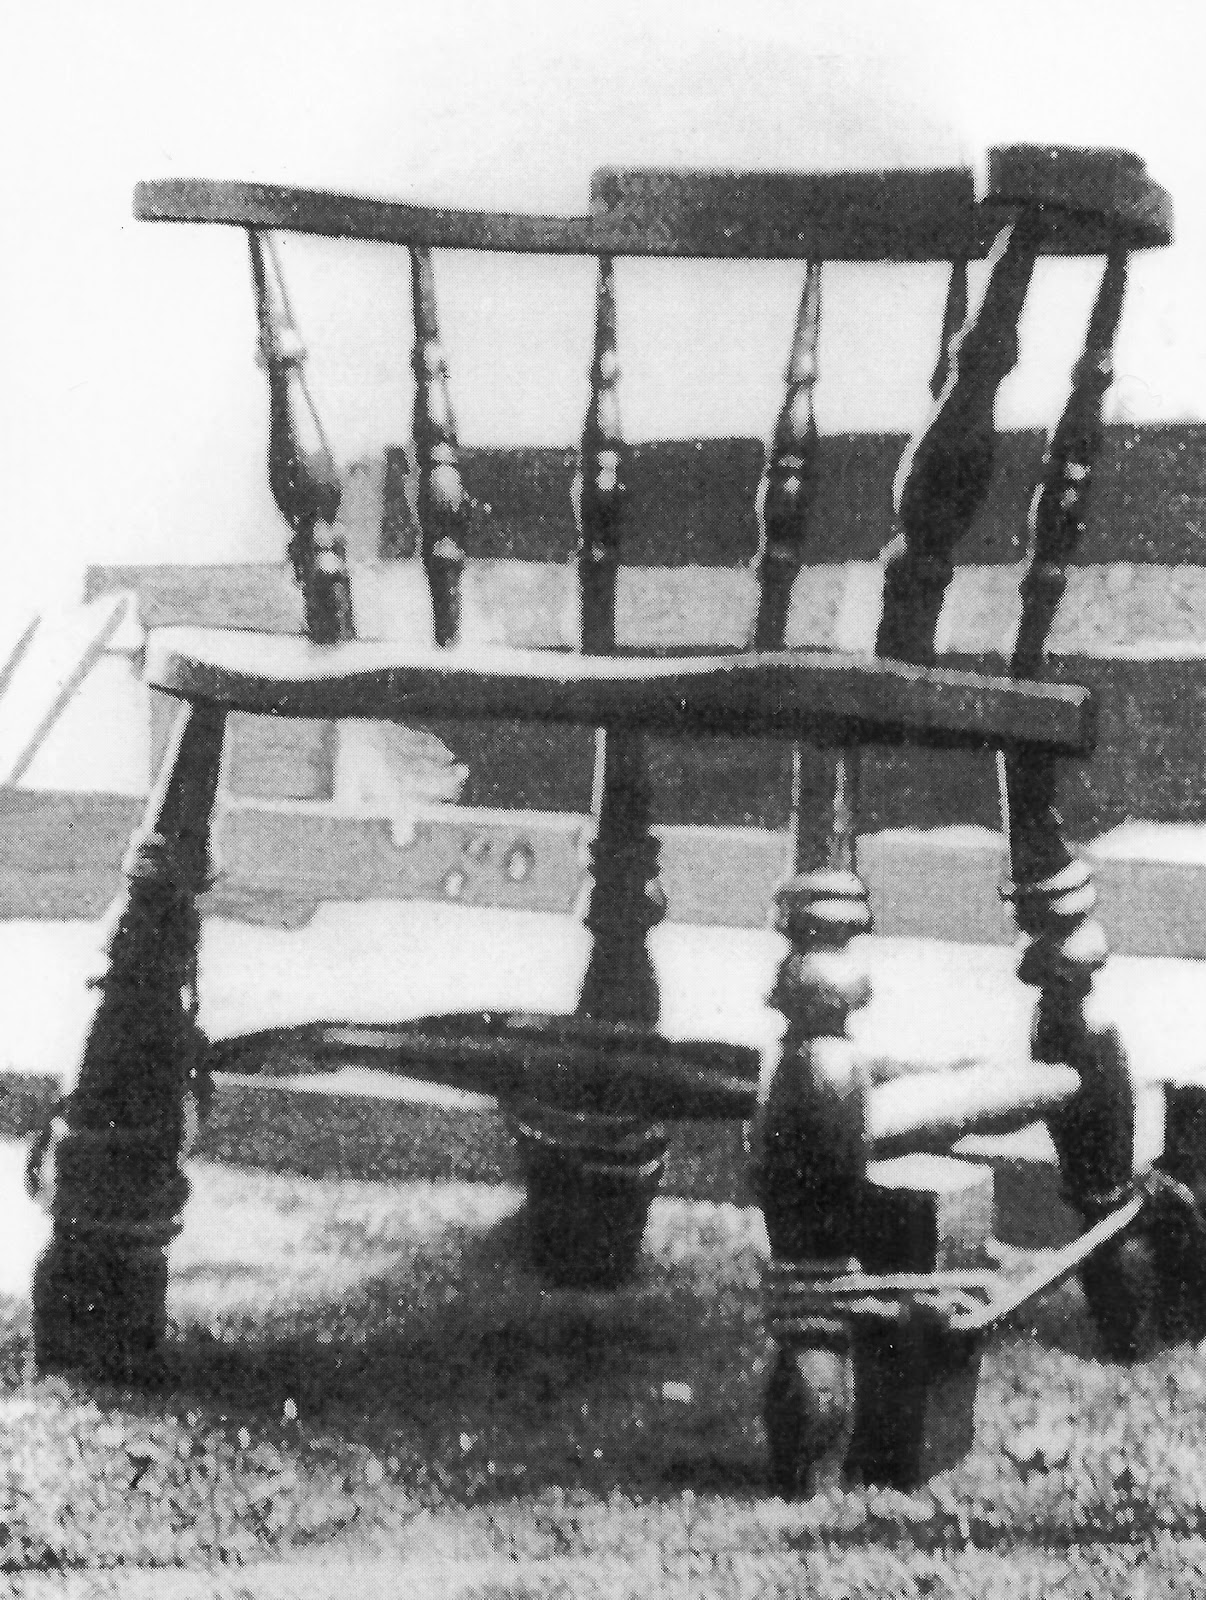 Chair in which German spies were executed during World War I.